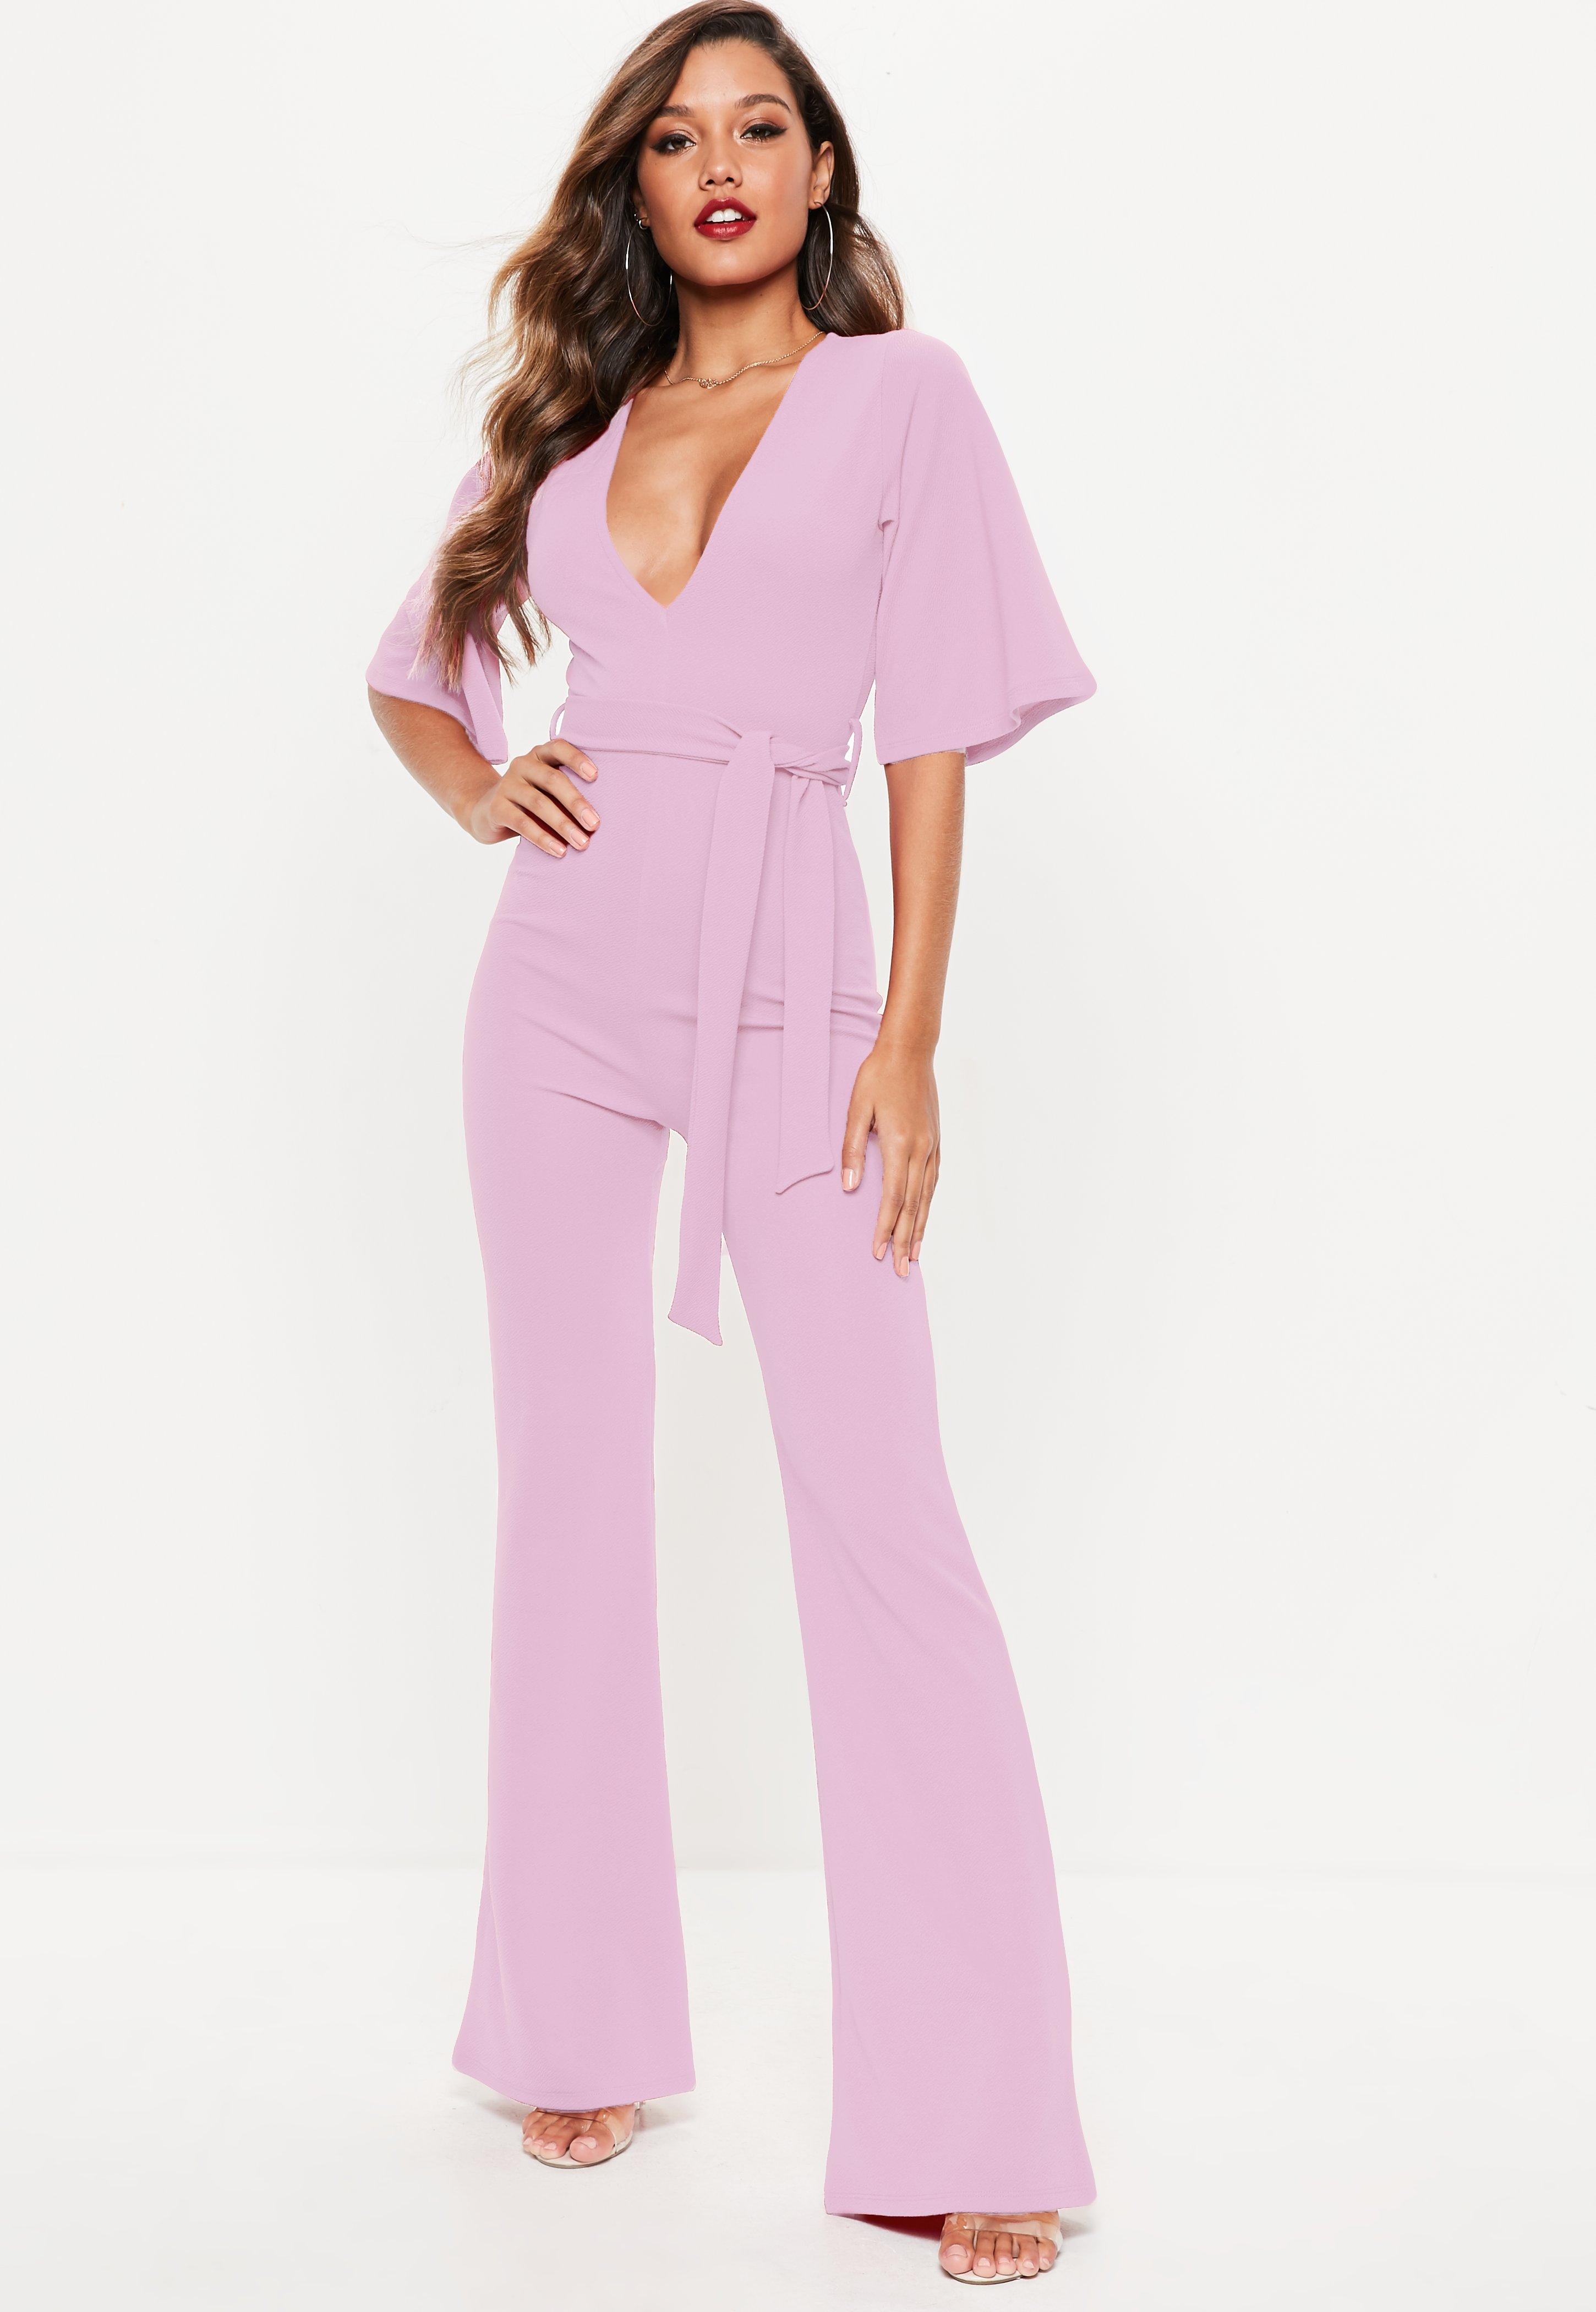 Missguided Lilac Plunge Kimono Sleeve Jumpsuit Cheap Perfect 6xyAJLI6